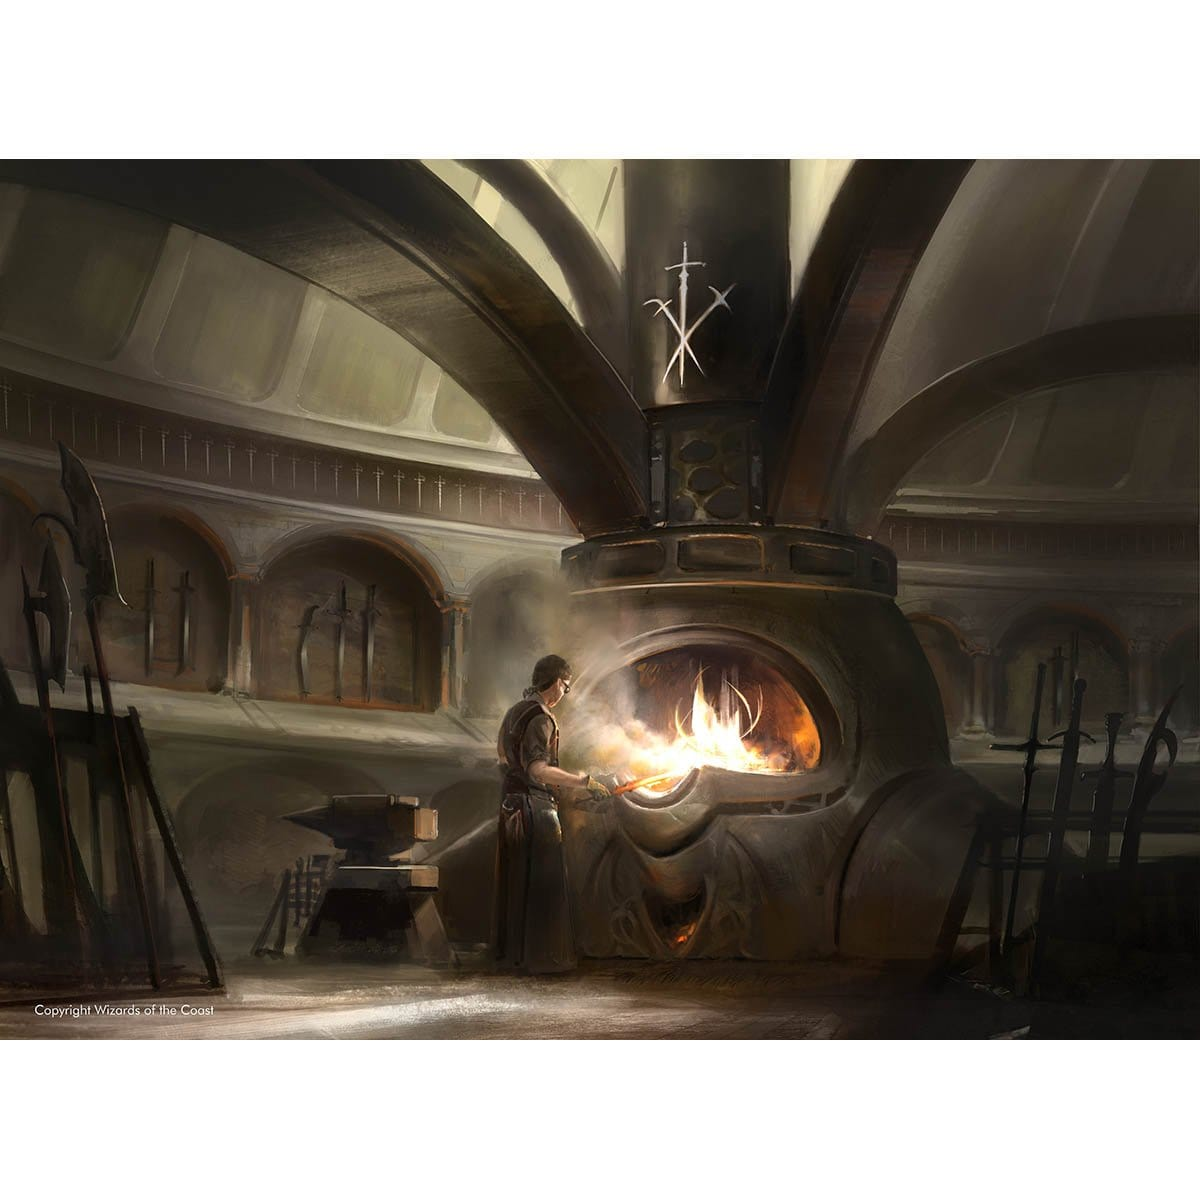 Mystic Forge Print - Print - Original Magic Art - Accessories for Magic the Gathering and other card games